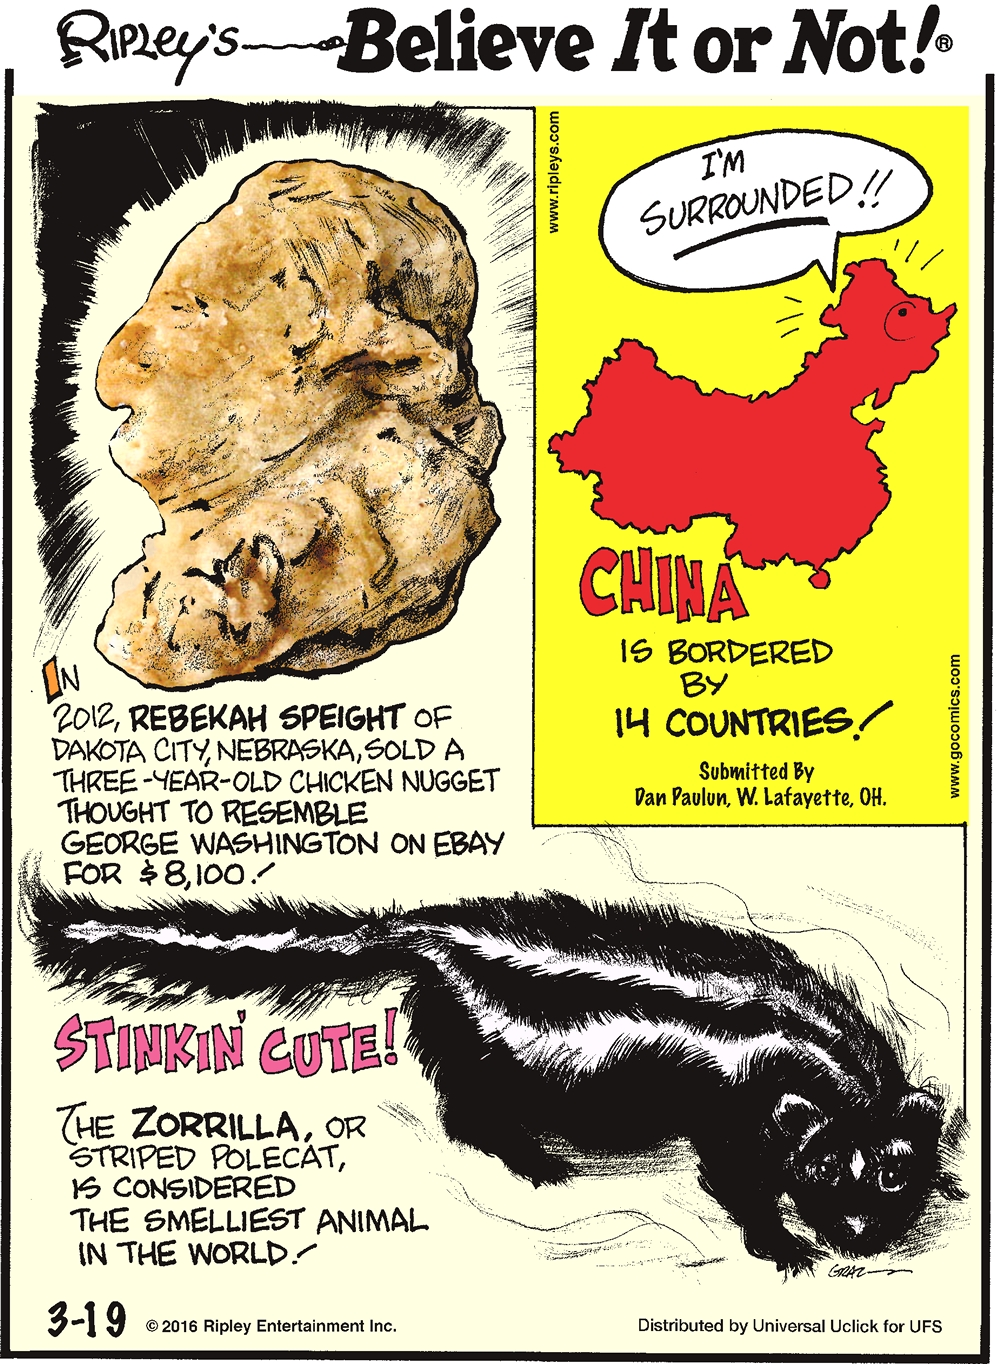 In 2012, Rebekah Speight of Dakota City, Nebraska, sold a three-year-old chicken nugget thought to resemble George Washington on eBay for $8,100. -------------------- China is bordered by 14 countries! Submitted by Dan Paulun, W. Lafayette, OH. -------------------- Stinkin' cute! The zorrilla, or striped polecat, is considered the smelliest animal in the world!